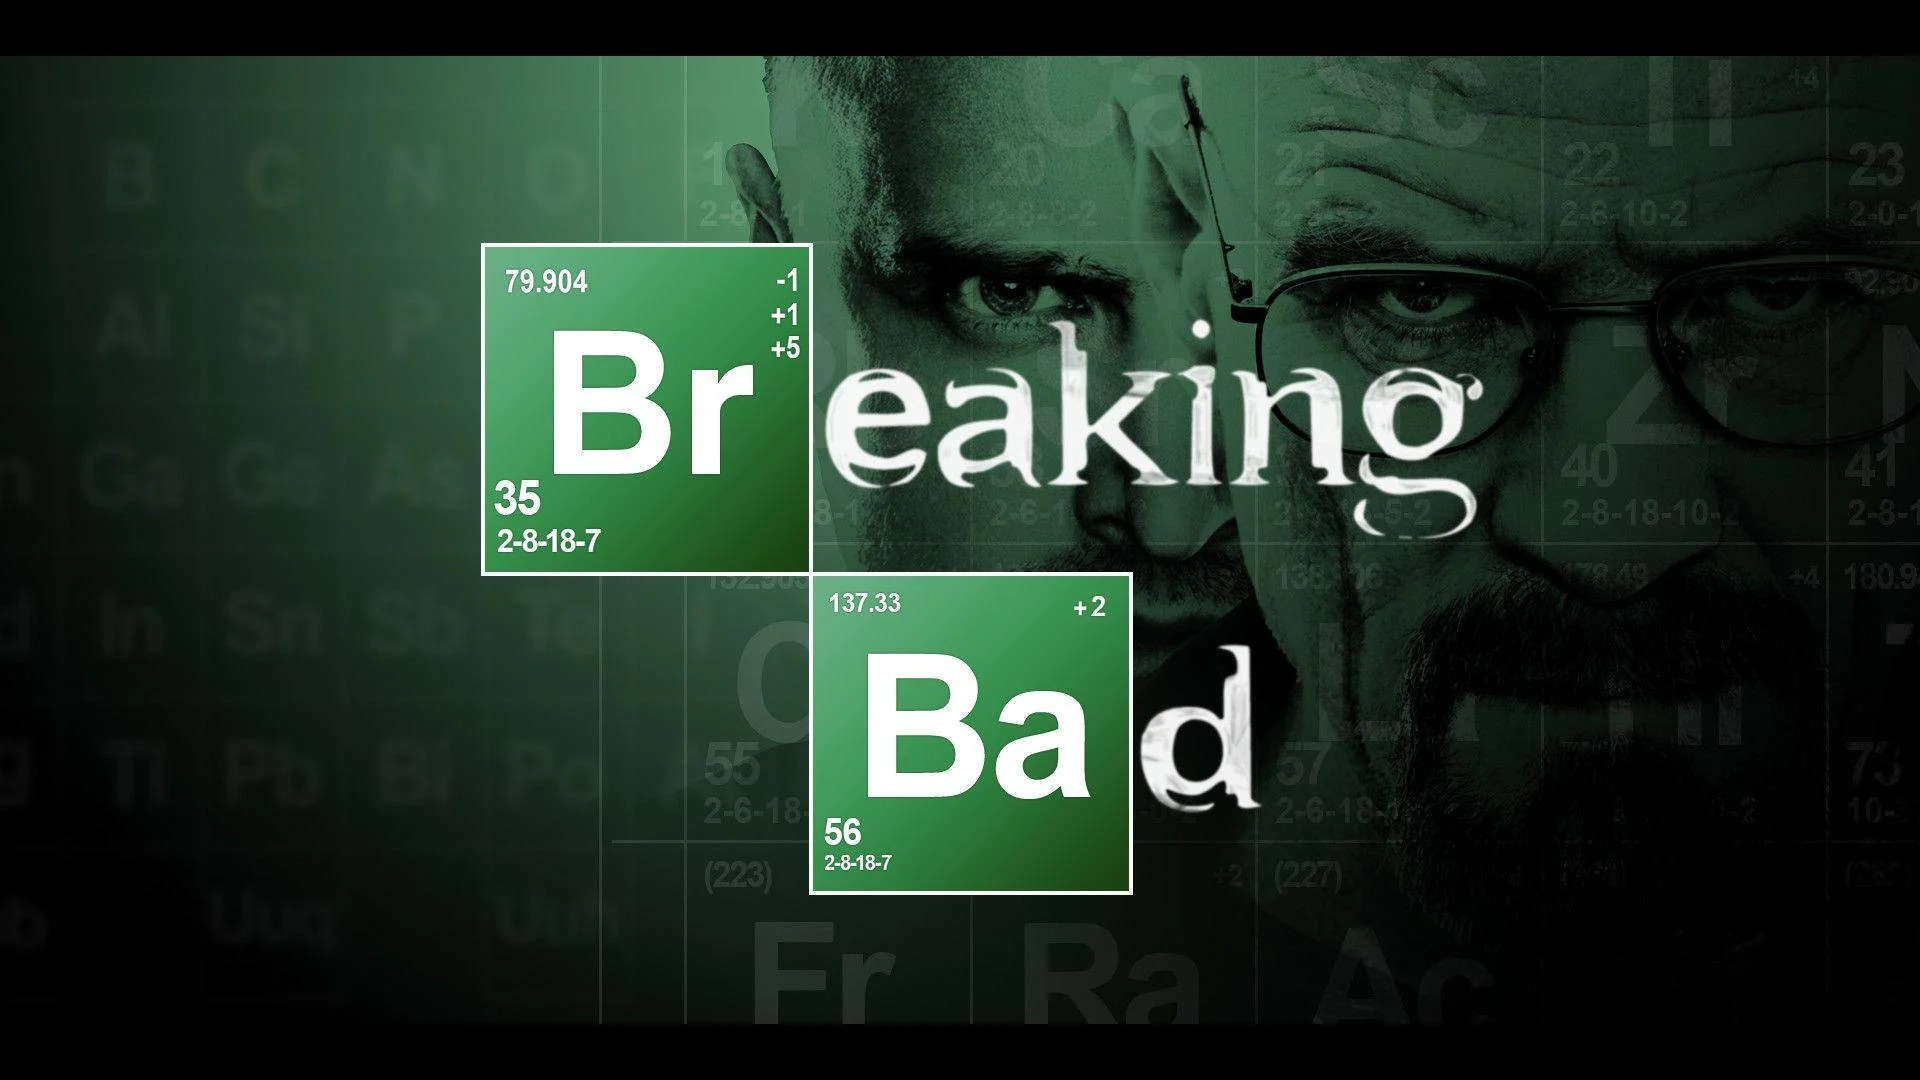 Bad Serie Breaking Bad Desktop Wallpapers Wallpaper Cave